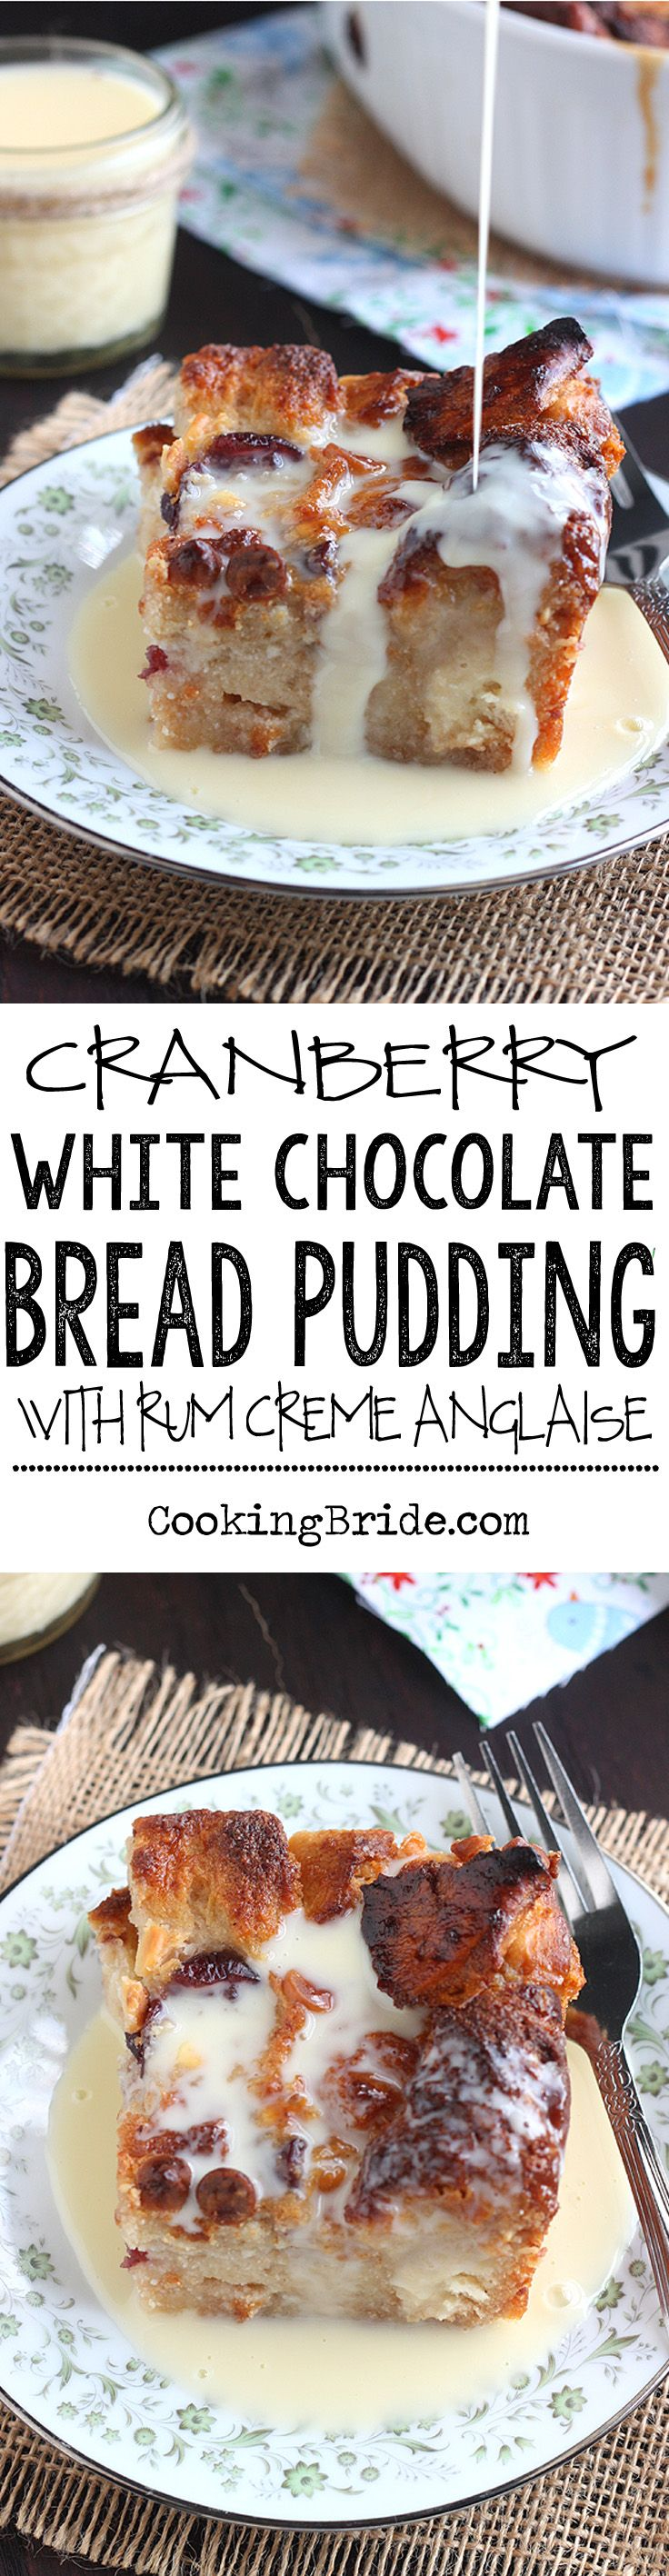 White chocolate cranberry bread pudding is over the top delicious when drizzled with warm rum creme anglaise sauce.